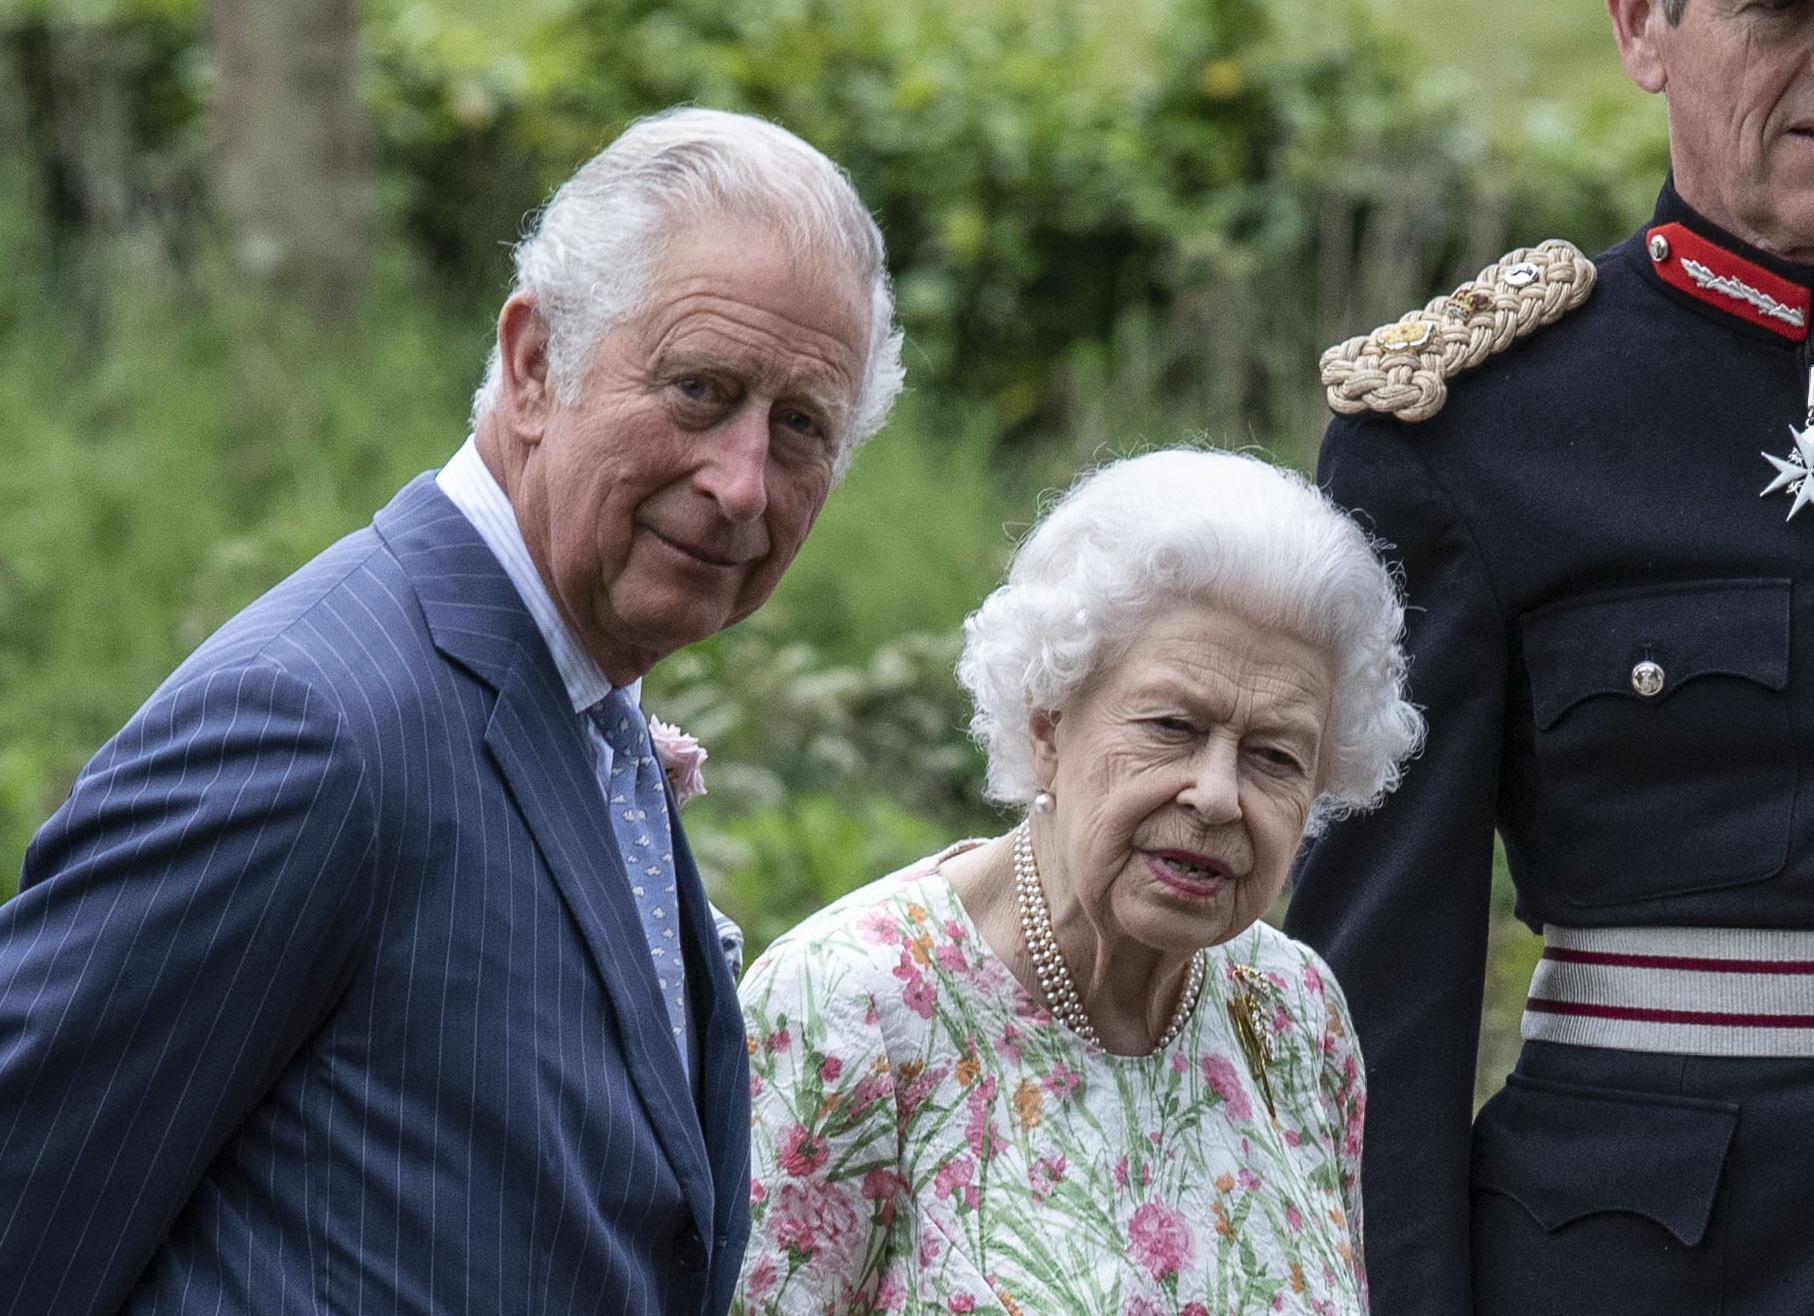 Queen was struck by Charles Honors scandal and death plans